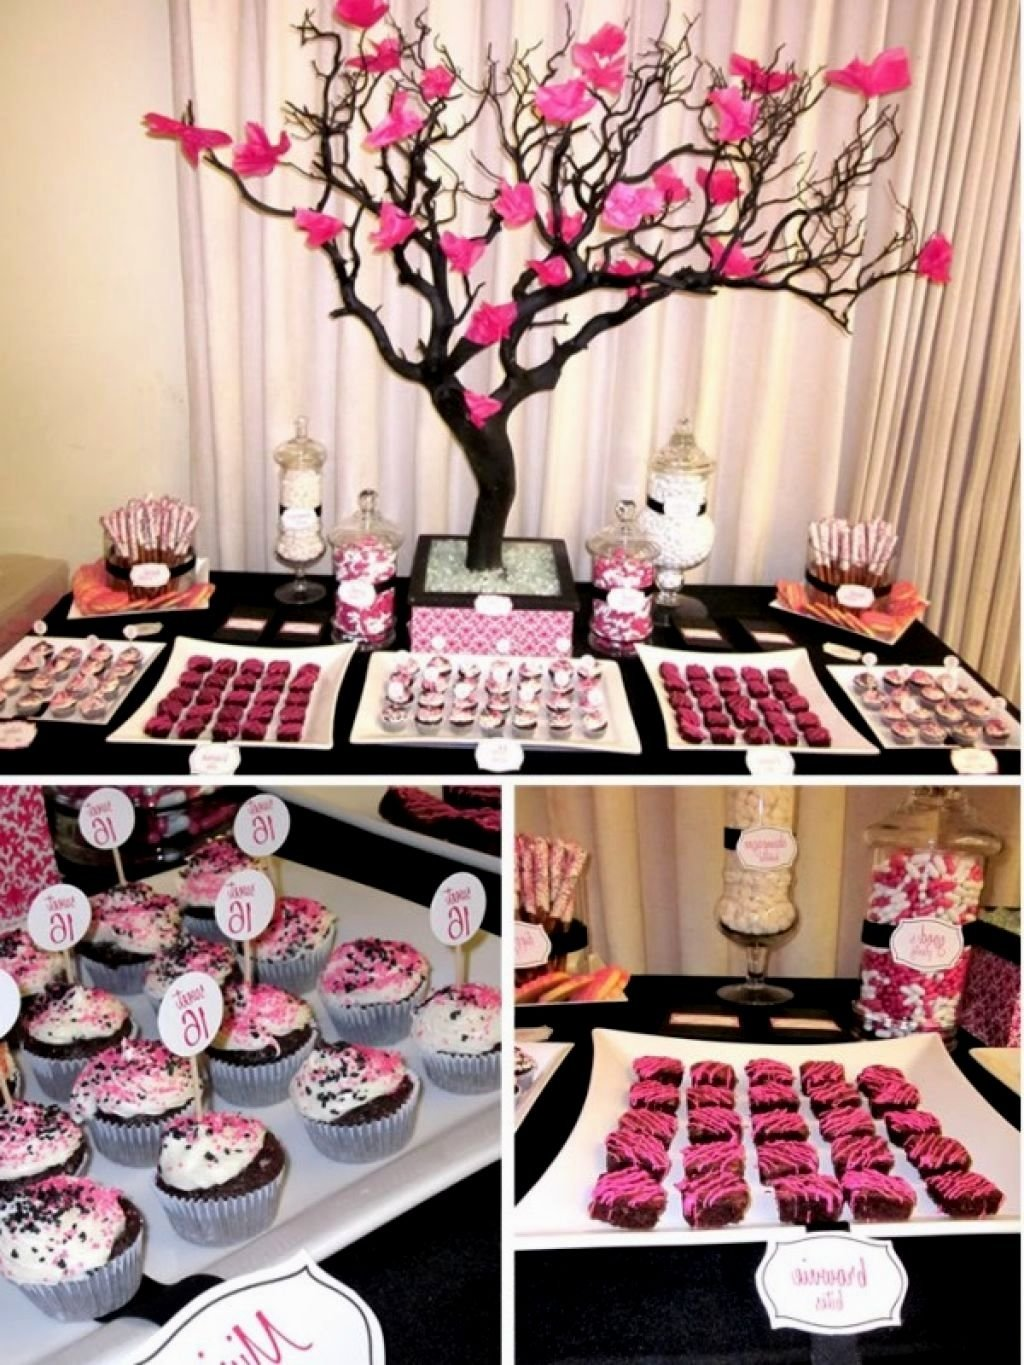 10 Famous Pink And Black Party Ideas pink and black party decor ideas decorating of party 2020